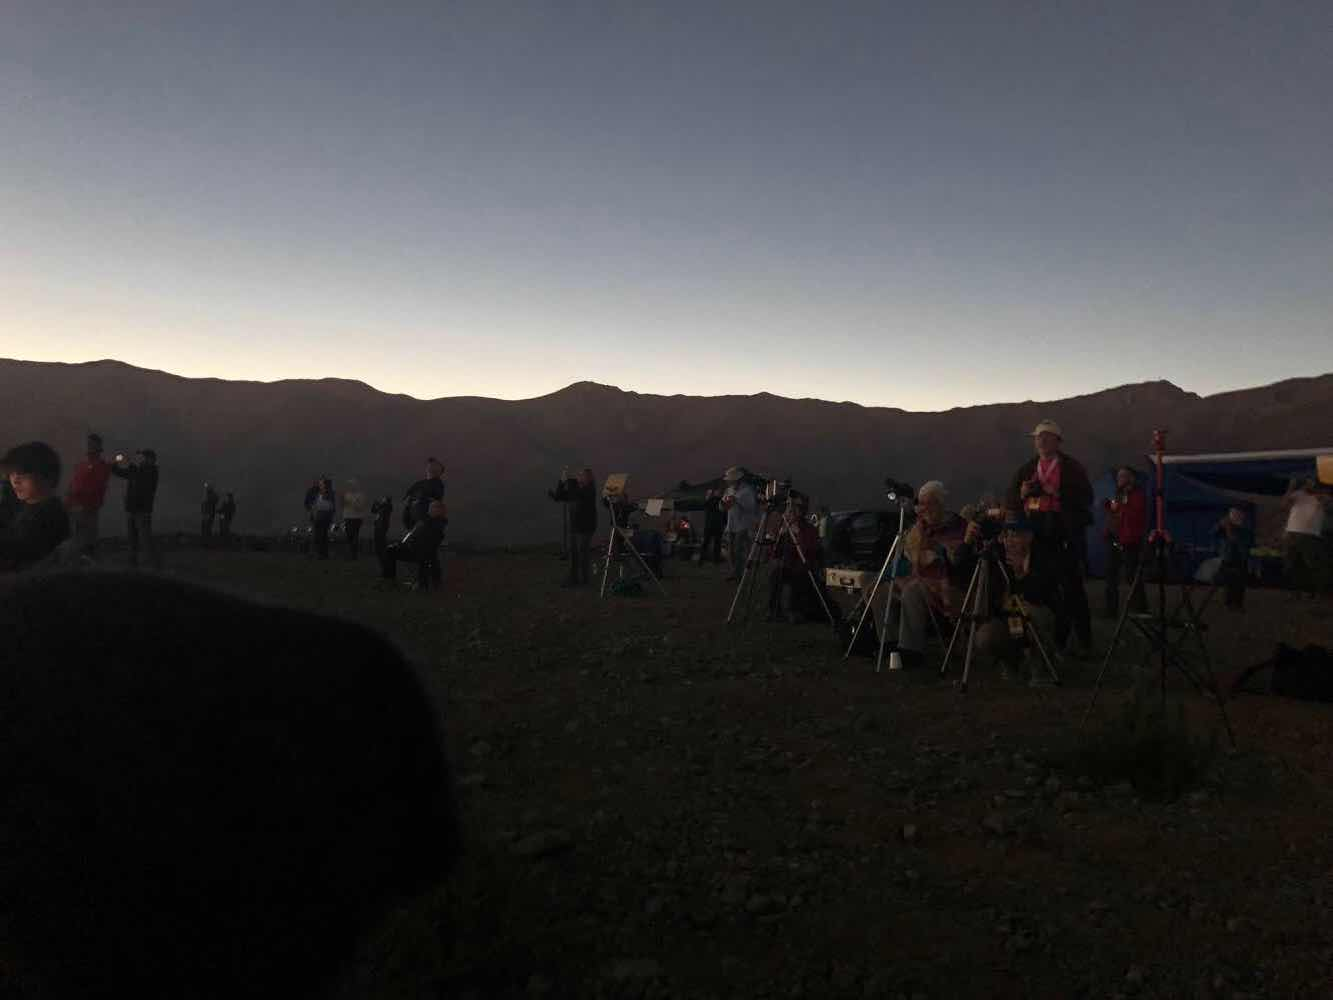 Comparison image showing local darkness during the eclipse at our viewing site (Source: Palmia Observatory)